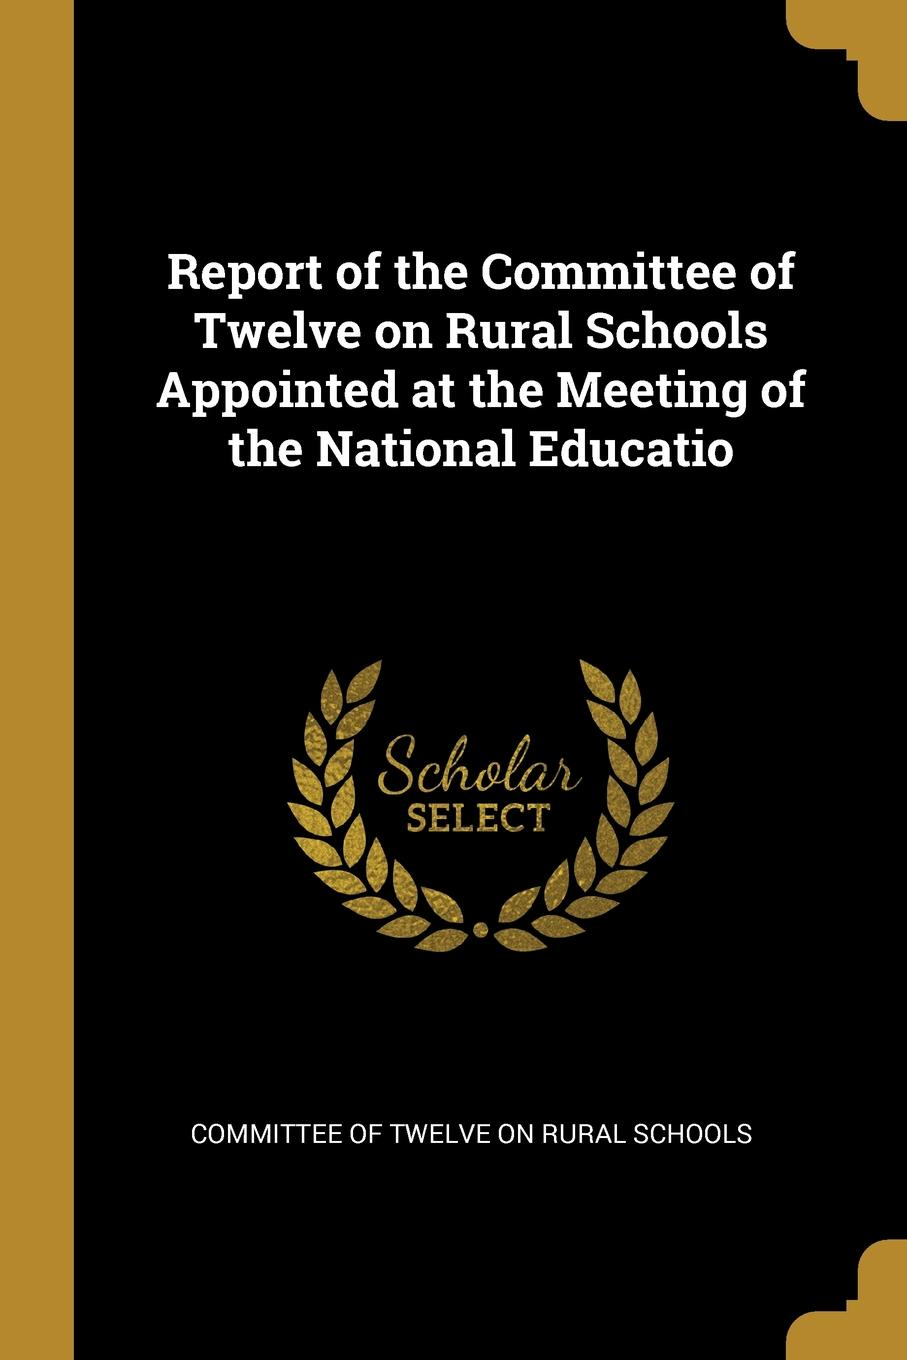 Committee of Twelve on Rural Schools. Report of the Committee of Twelve on Rural Schools Appointed at the Meeting of the National Educatio